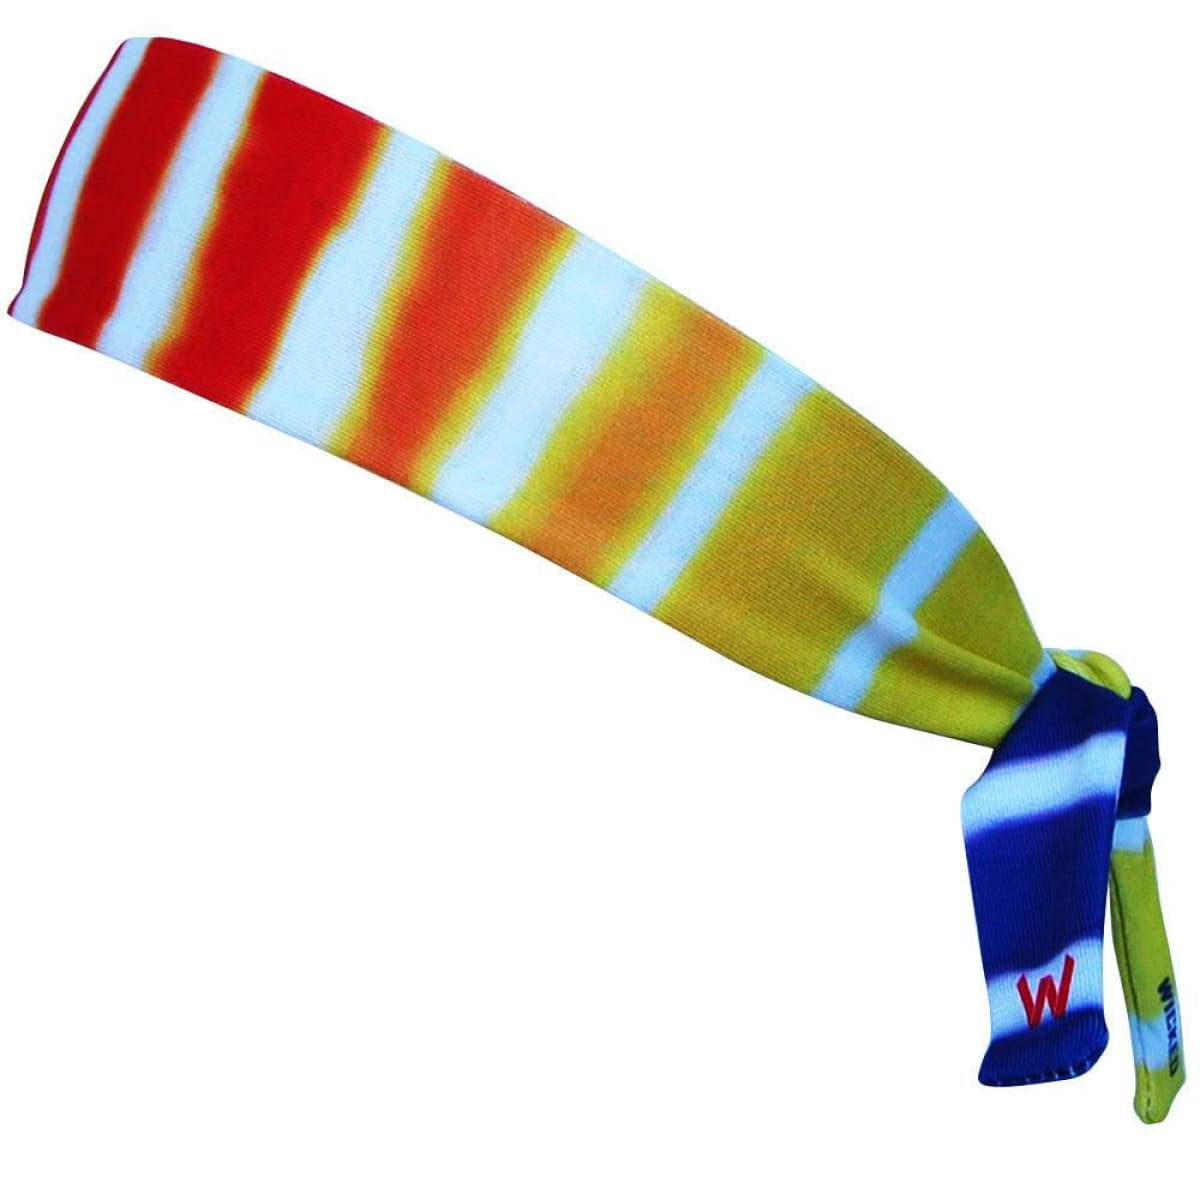 Tie Dye Stripes Elastic Tie Headband - Multi / One Size - Wicked Headbands